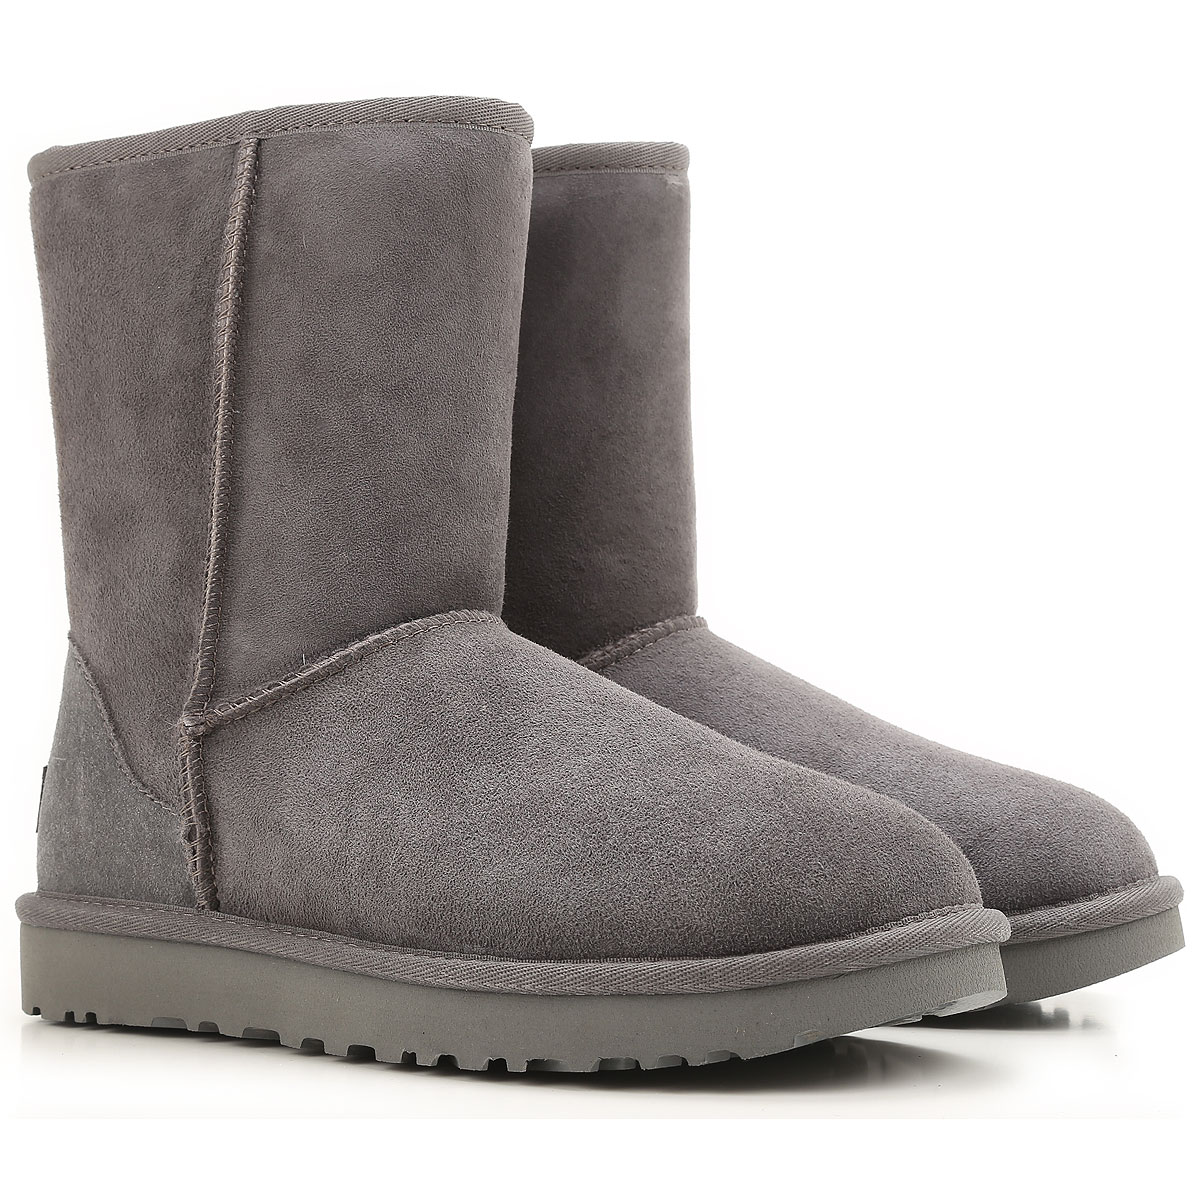 UGG Boots for Women, Booties On Sale, Grey, Suede leather, 2019, USA 5 UK 3 5 EU 36 JAPAN 220 USA 6 UK 4 5 EU 37 JAPAN 230 USA 8 UK 6 5 EU 39